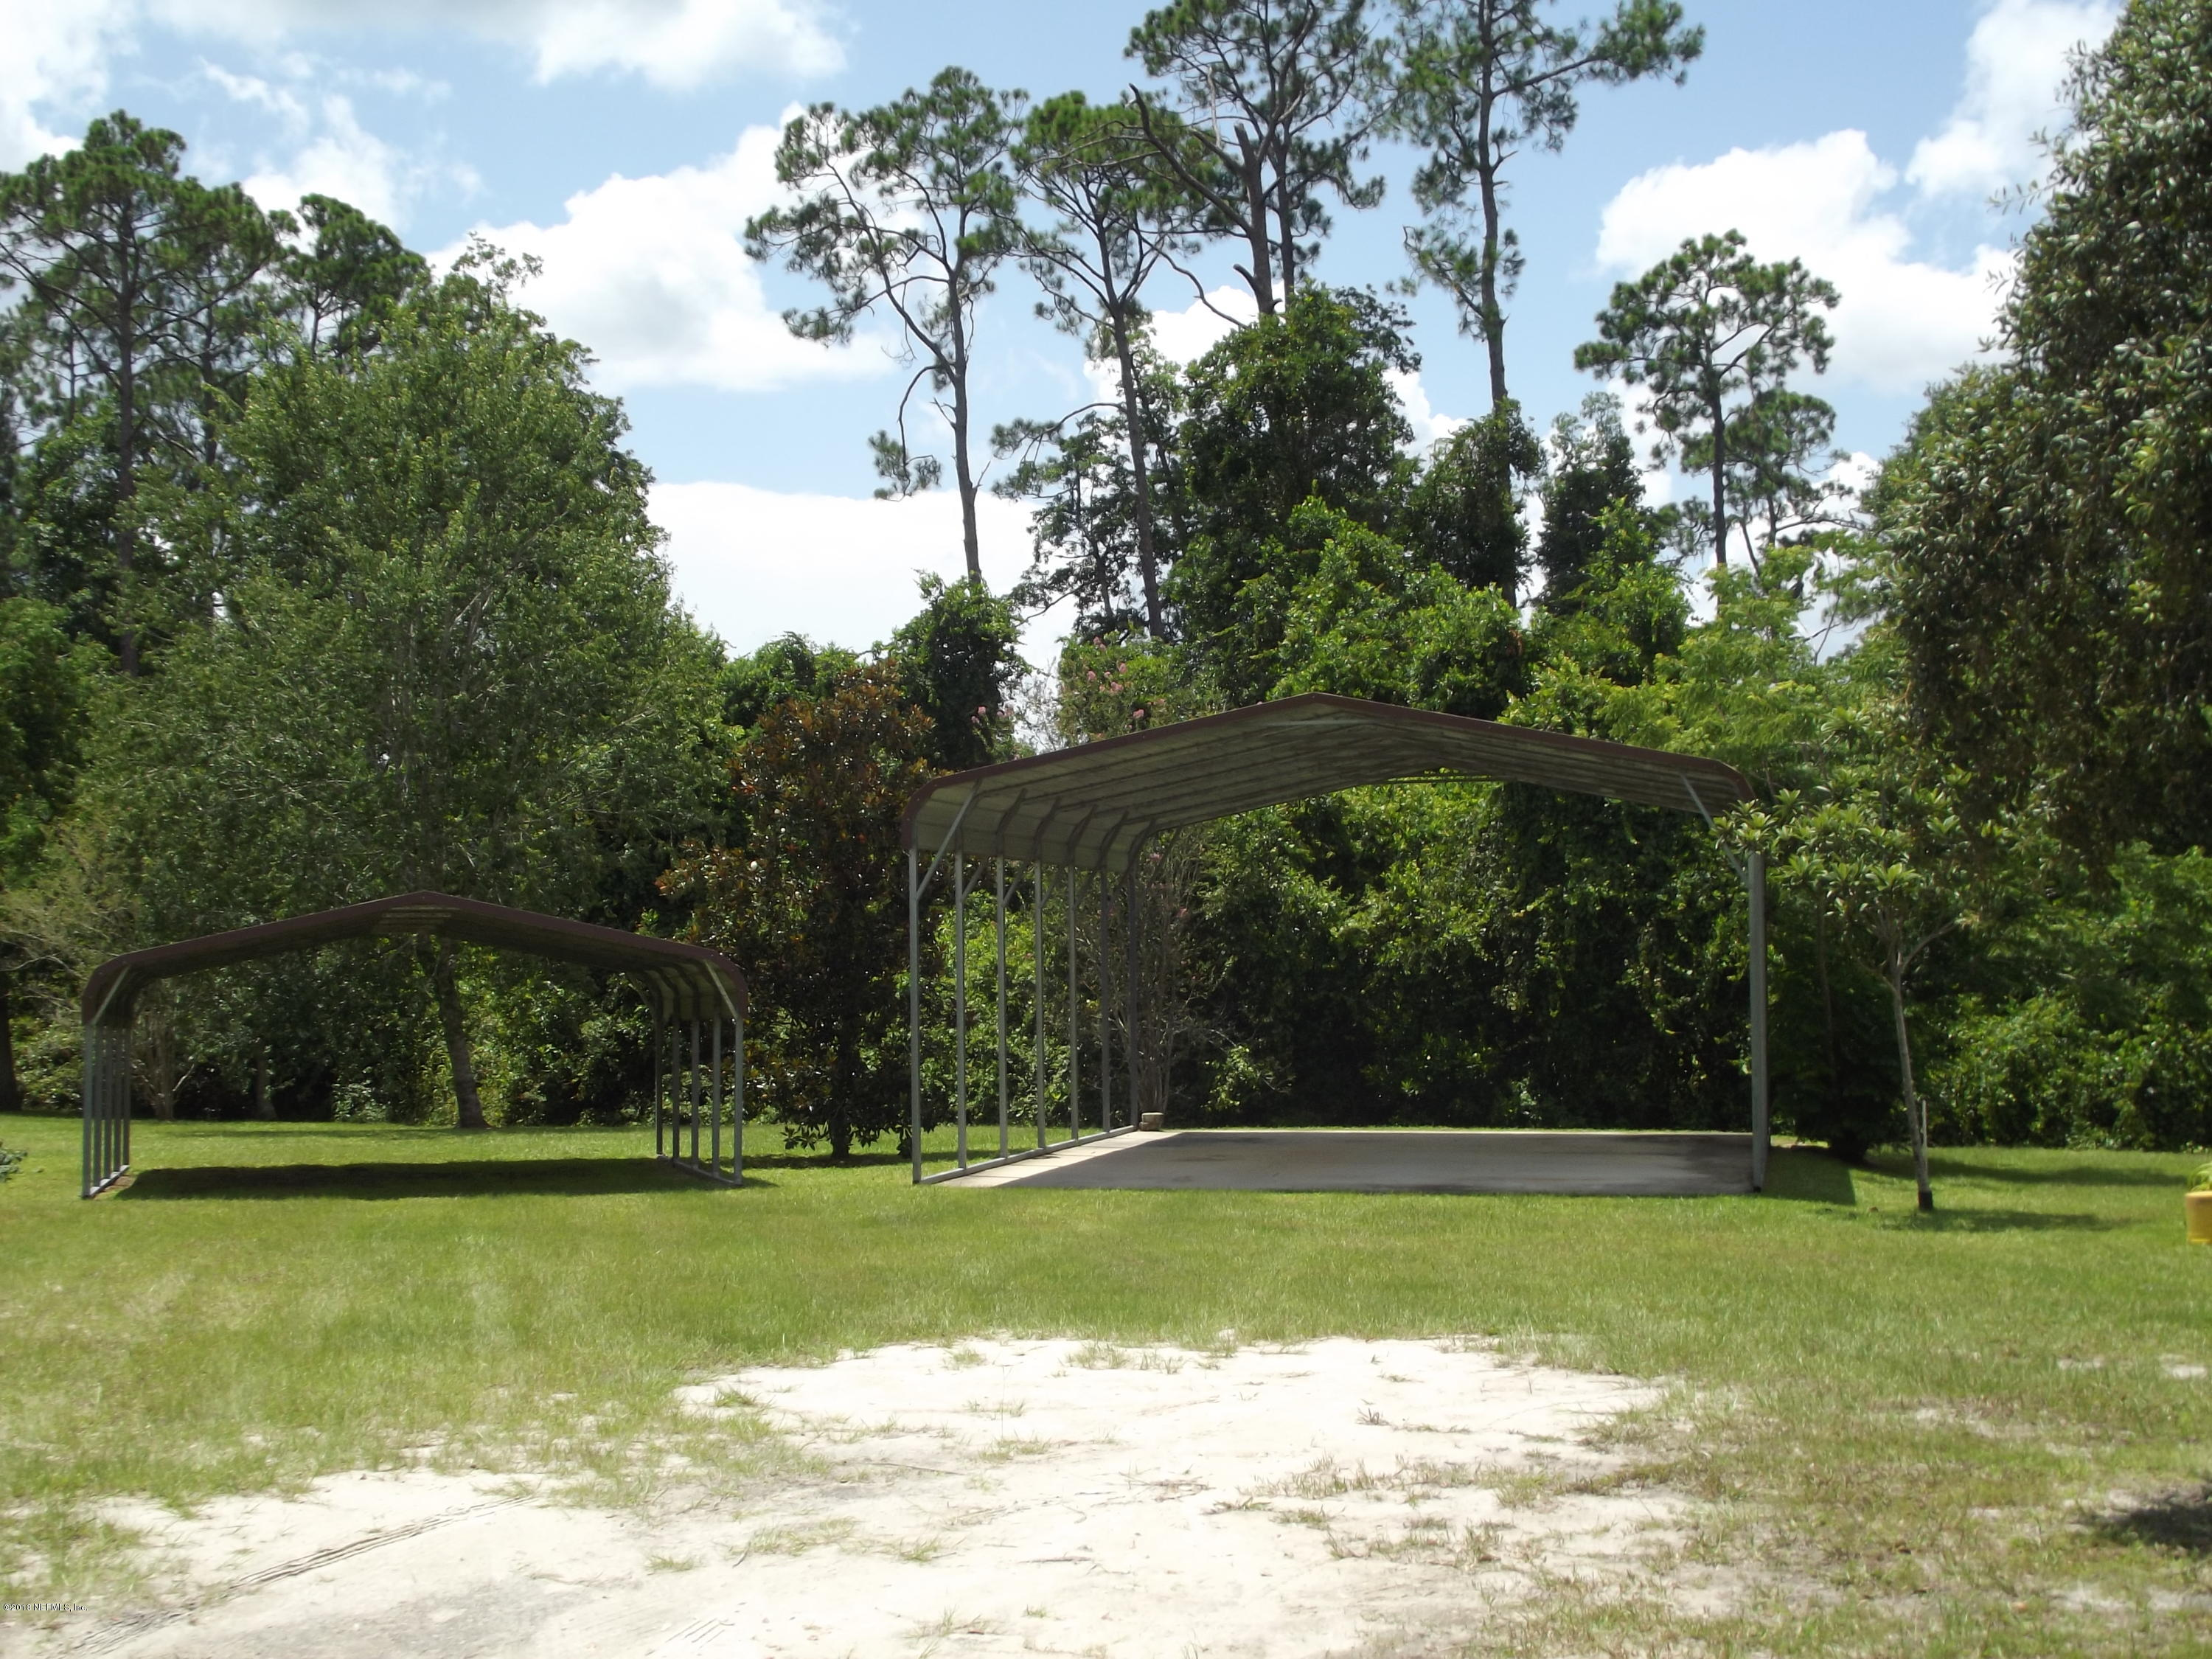 147 RILEY LAKE, HAWTHORNE, FLORIDA 32640, 4 Bedrooms Bedrooms, ,3 BathroomsBathrooms,Residential - mobile home,For sale,RILEY LAKE,949466